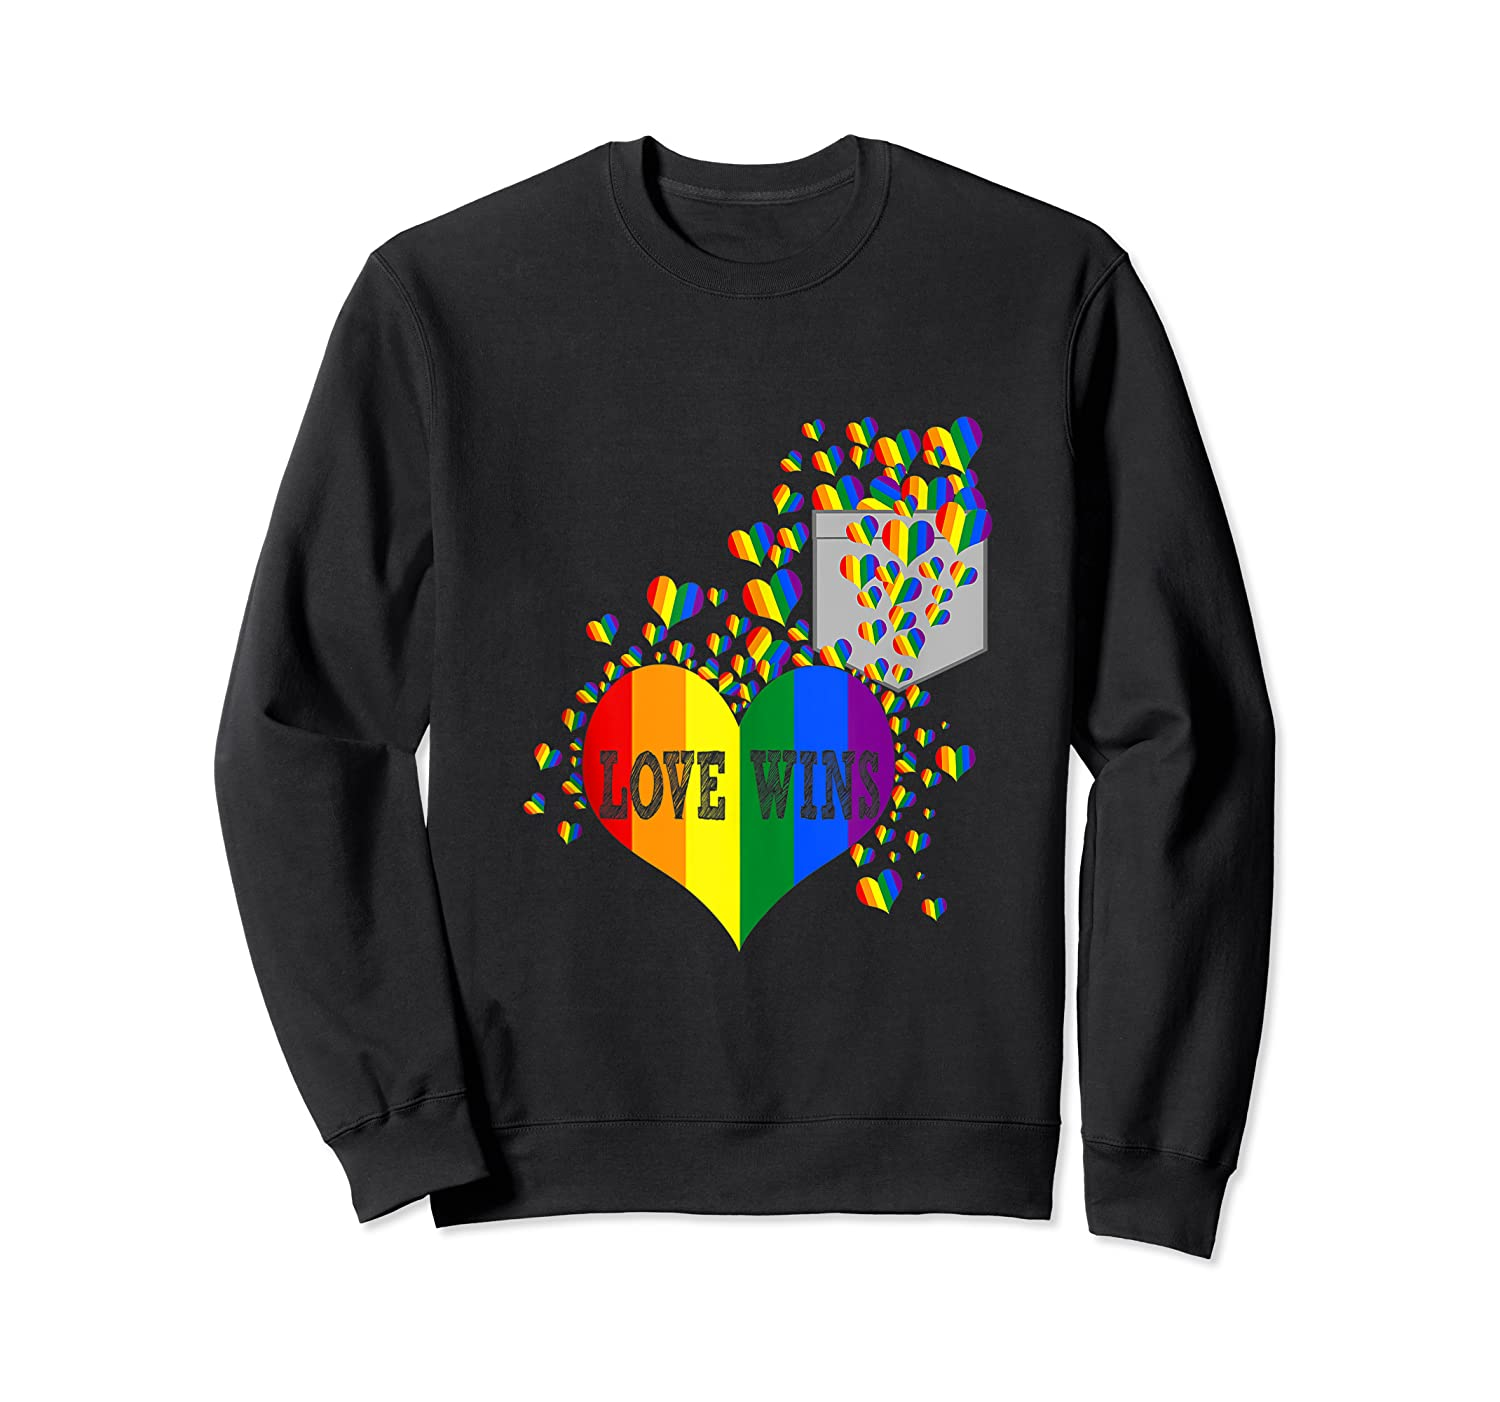 Love Wins Lgbtq Color Heart Pride Month Rally Shirt Tank Top Crewneck Sweater